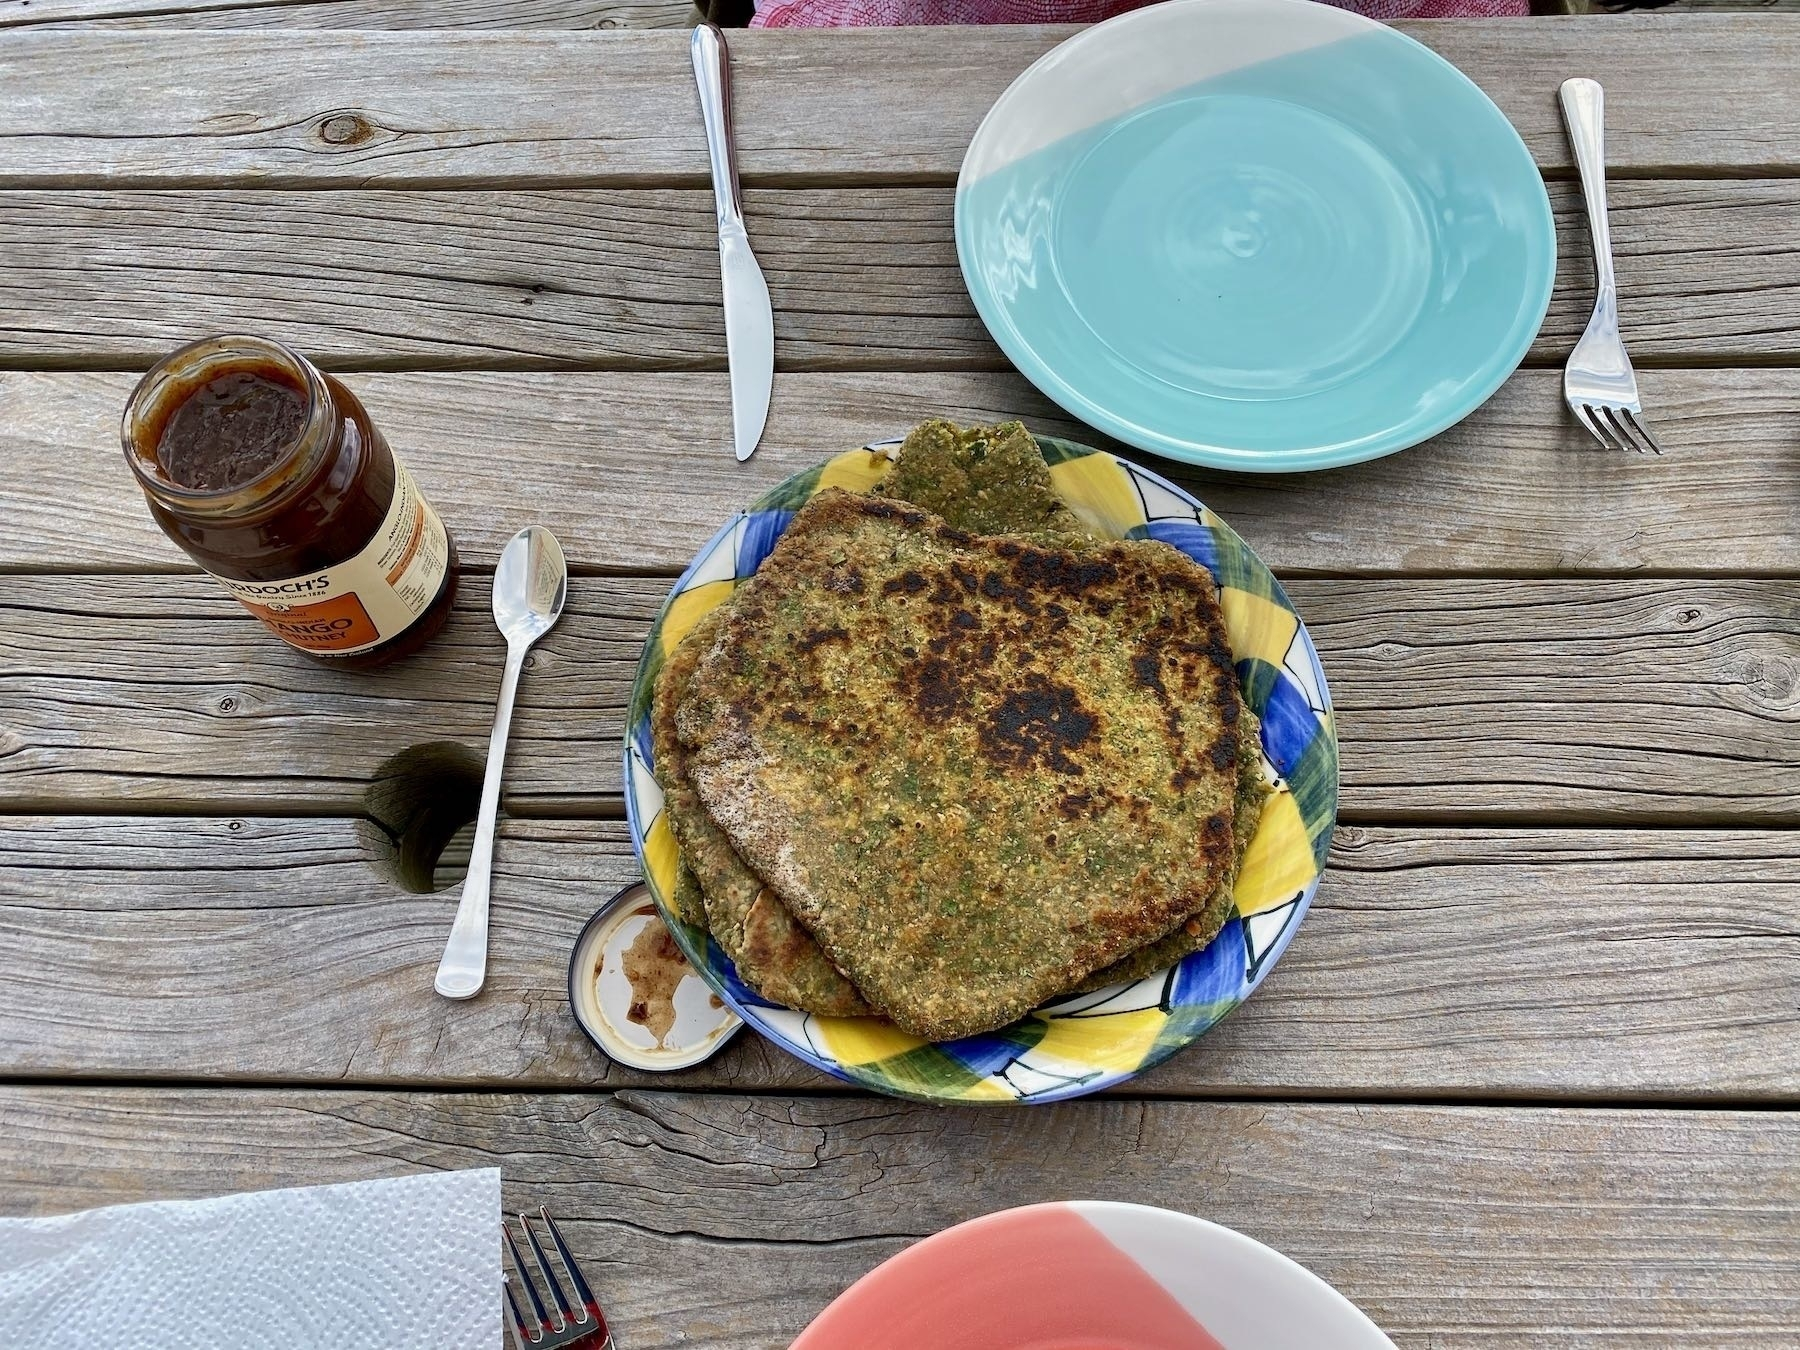 Paratha served and waiting to be eaten.